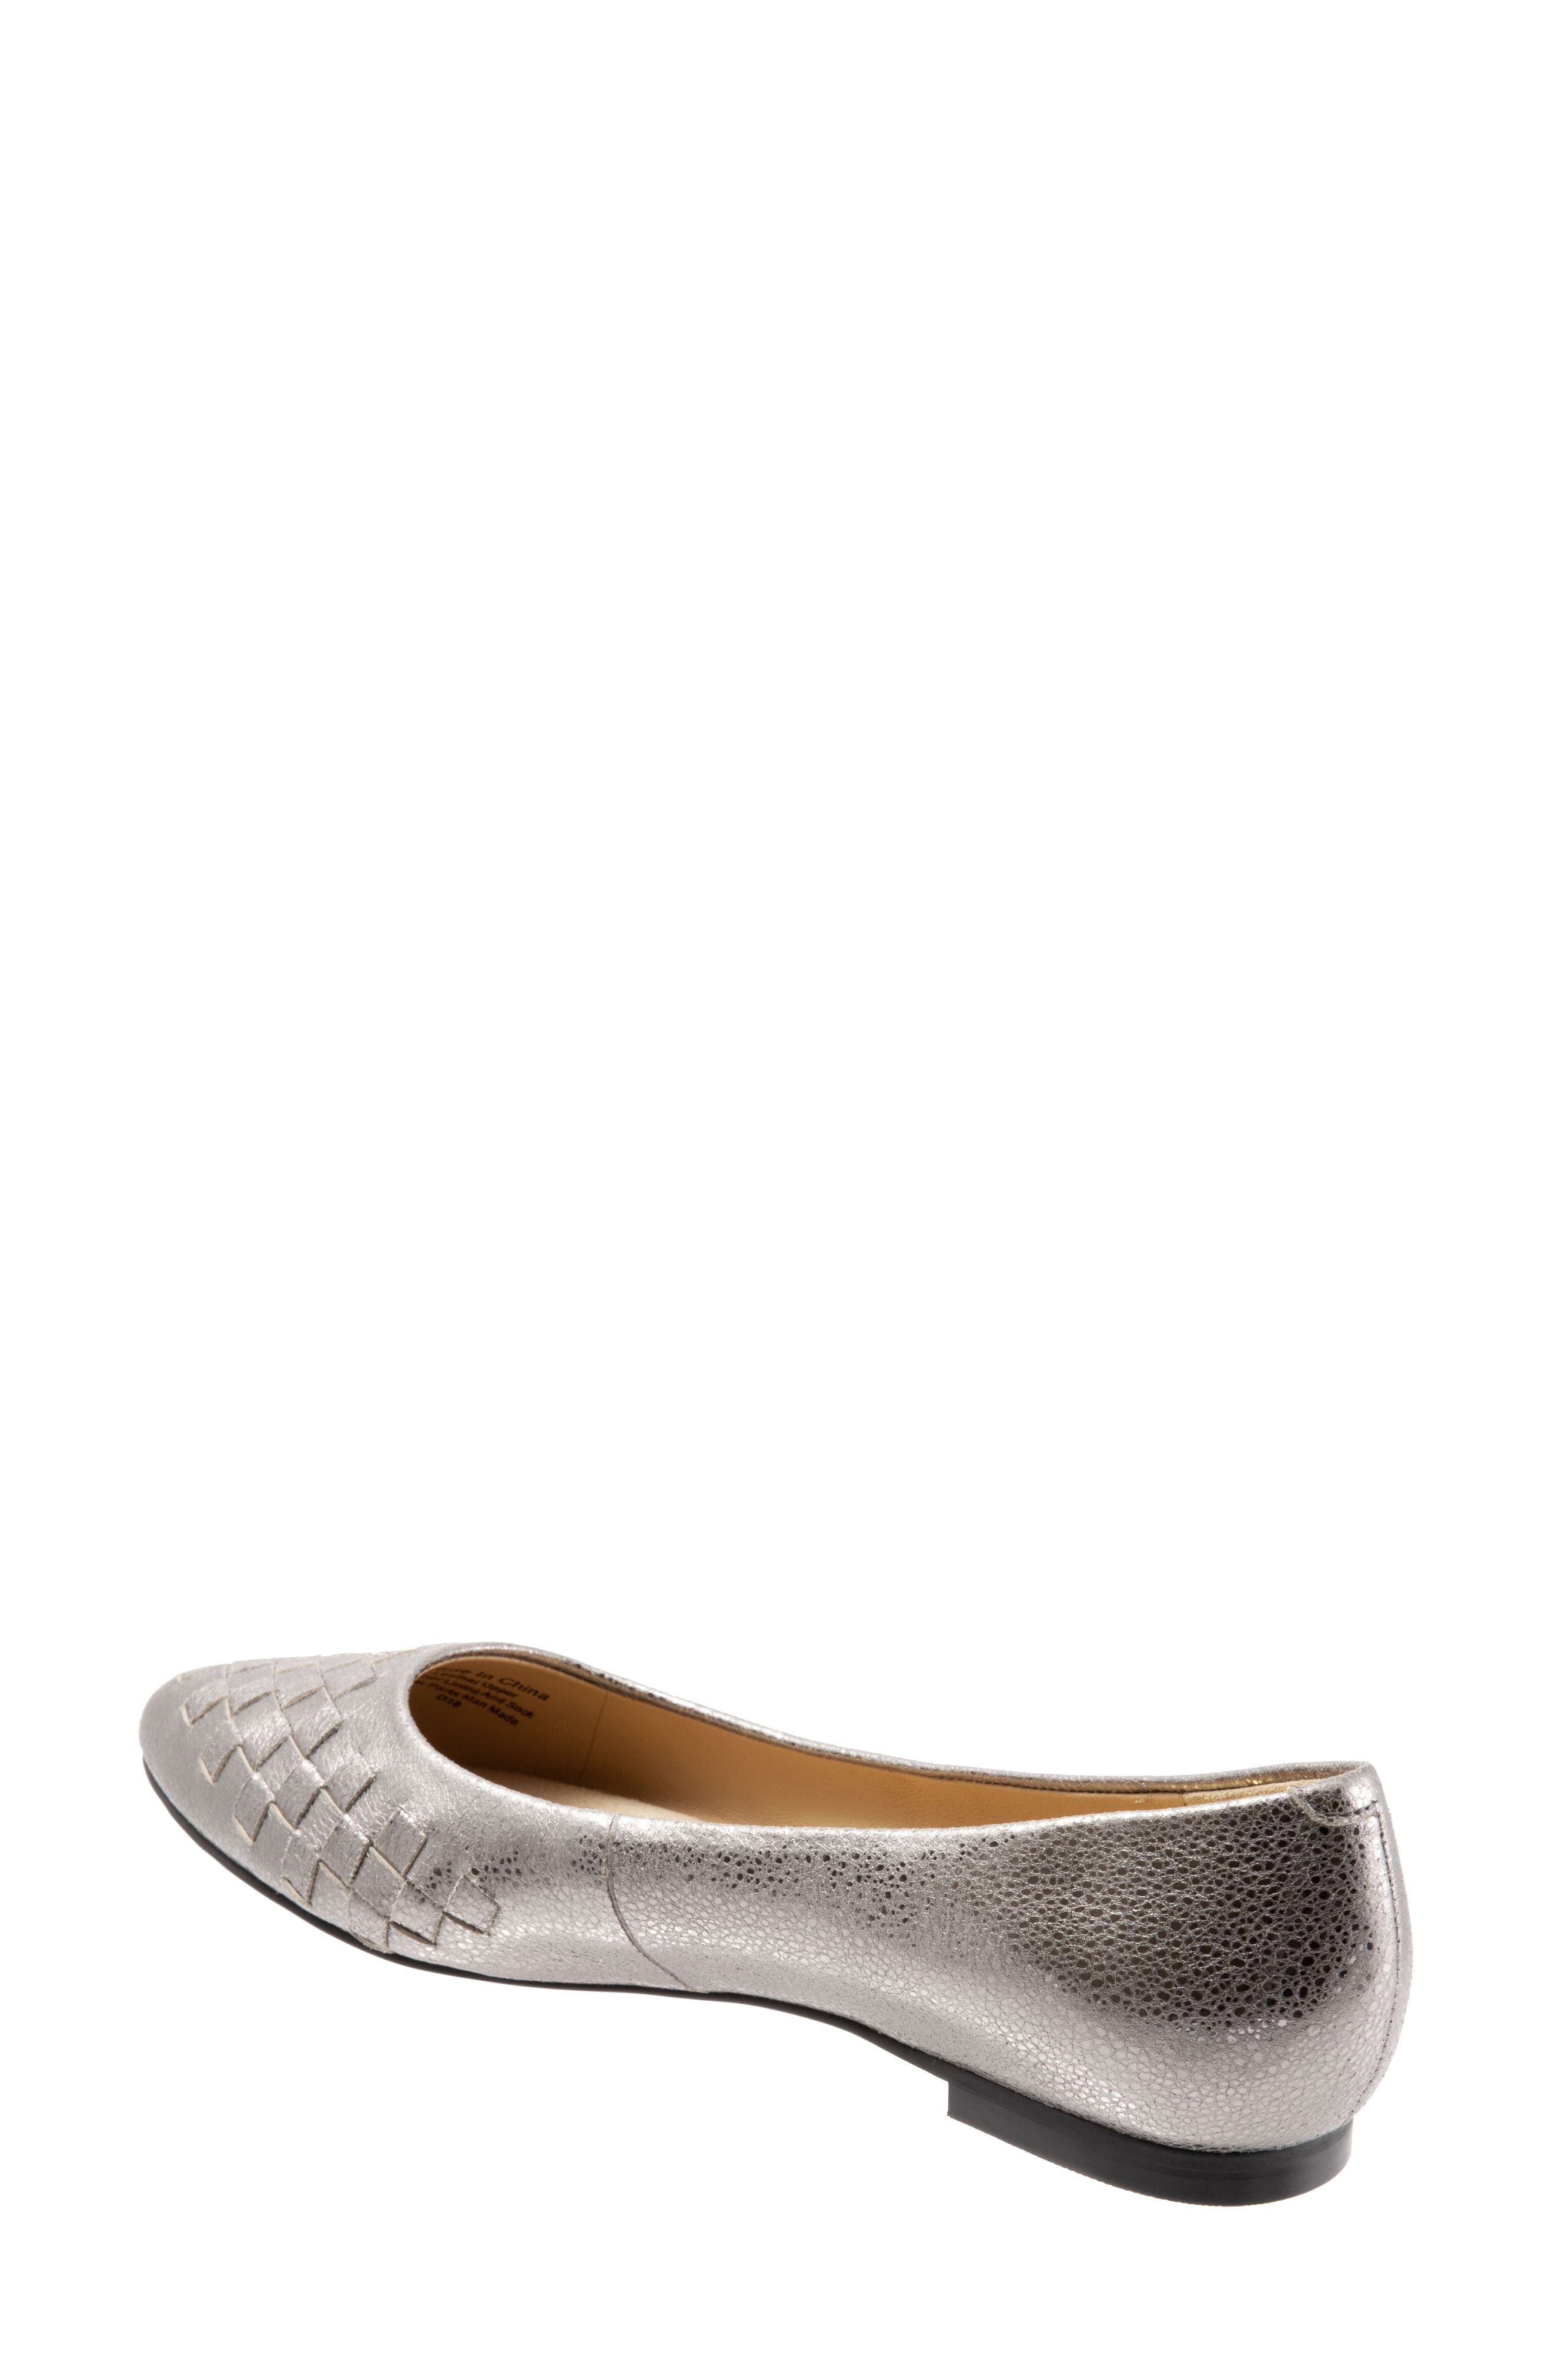 TROTTERS, Estee Pointed Toe Flat, Alternate thumbnail 2, color, SILVER LEATHER